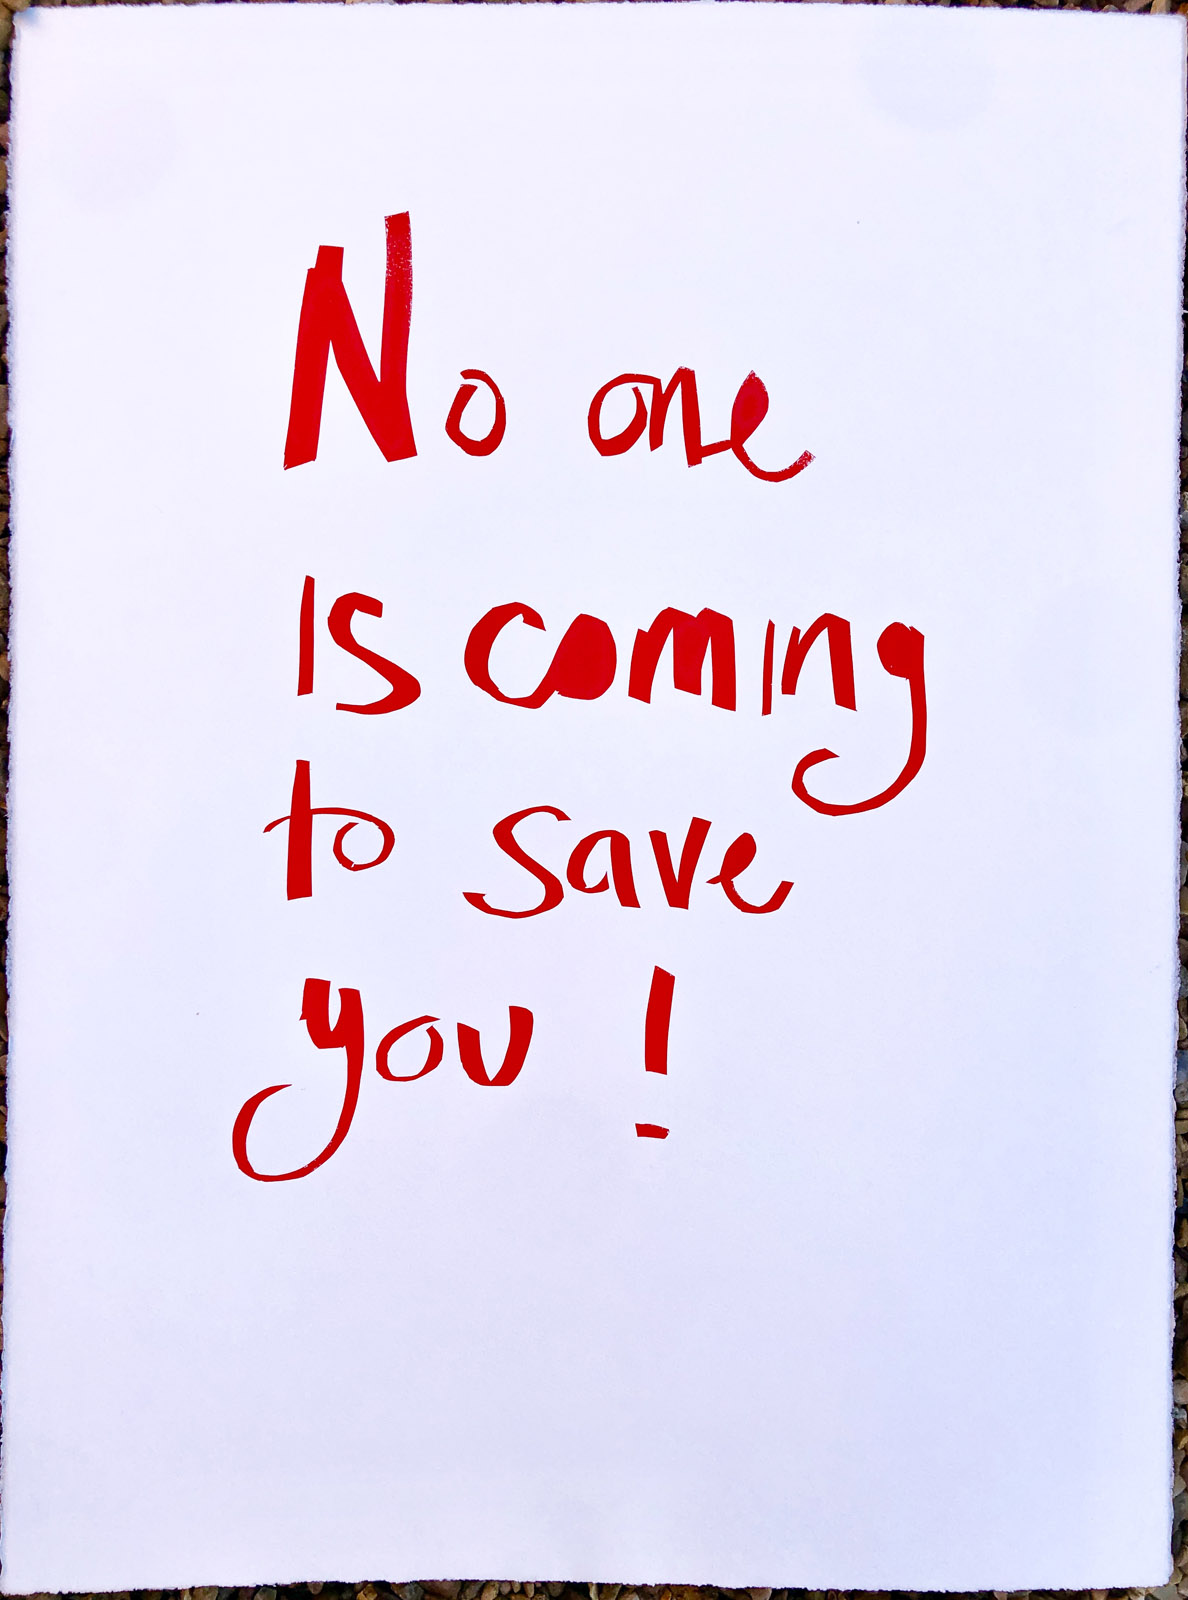 No one's coming to save you